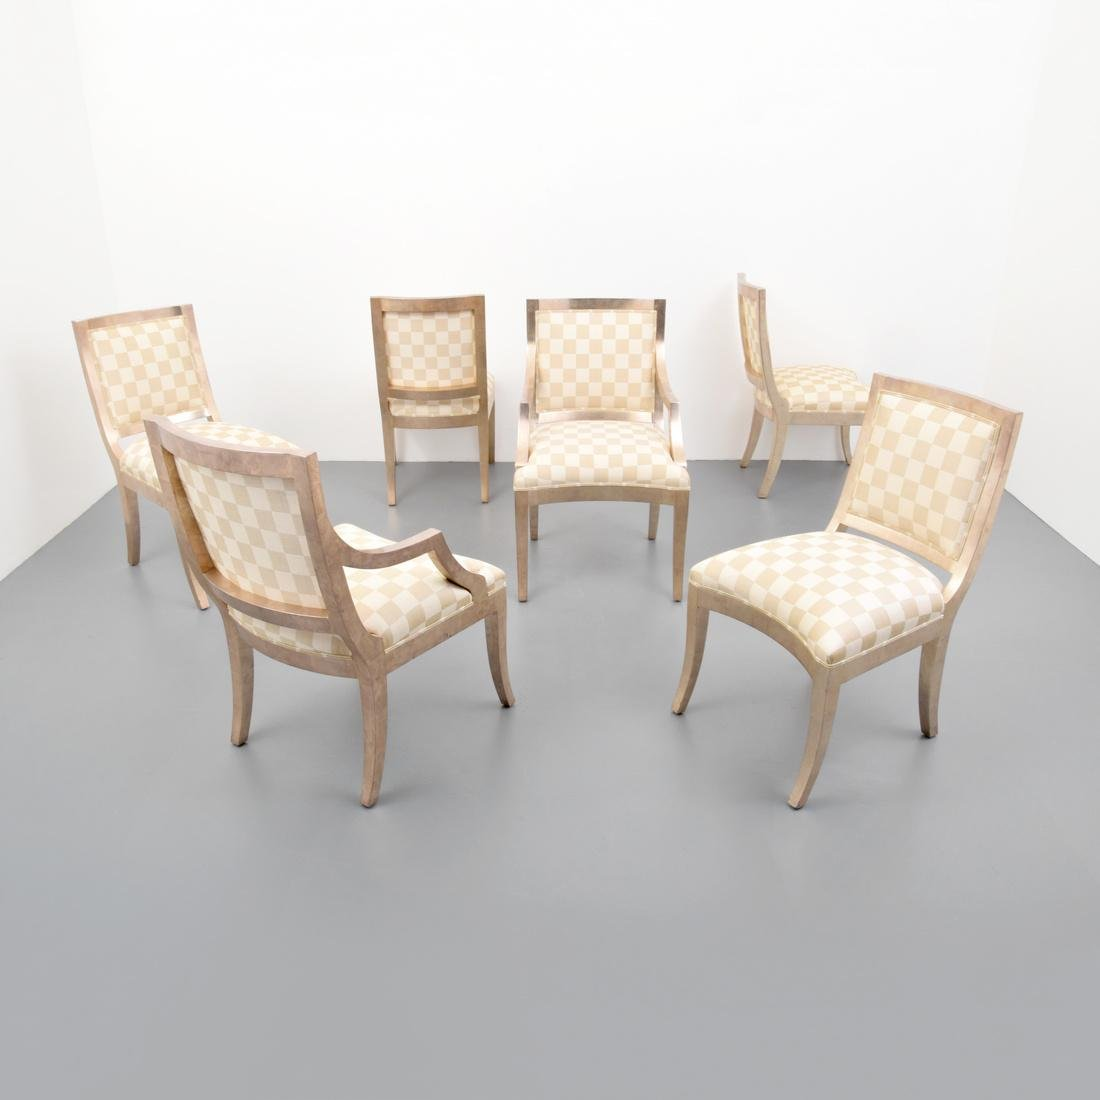 Sally Sirkin Lewis Dining Chairs, Set of 6